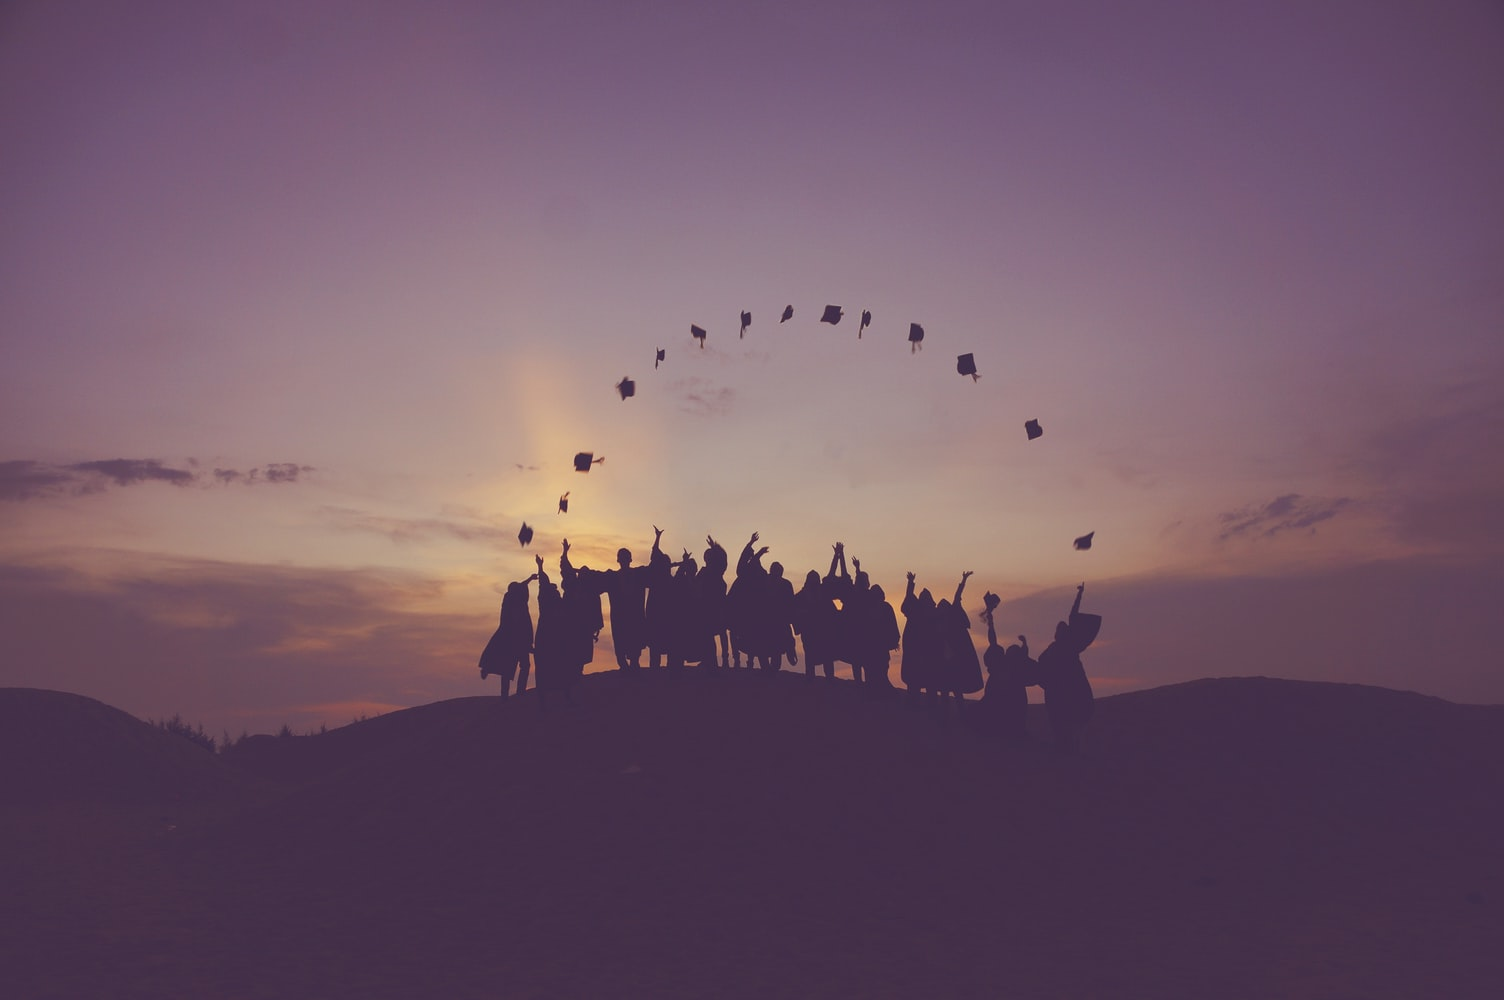 Graduates in nature with a darkening sky background, throwing caps into the air in a circle